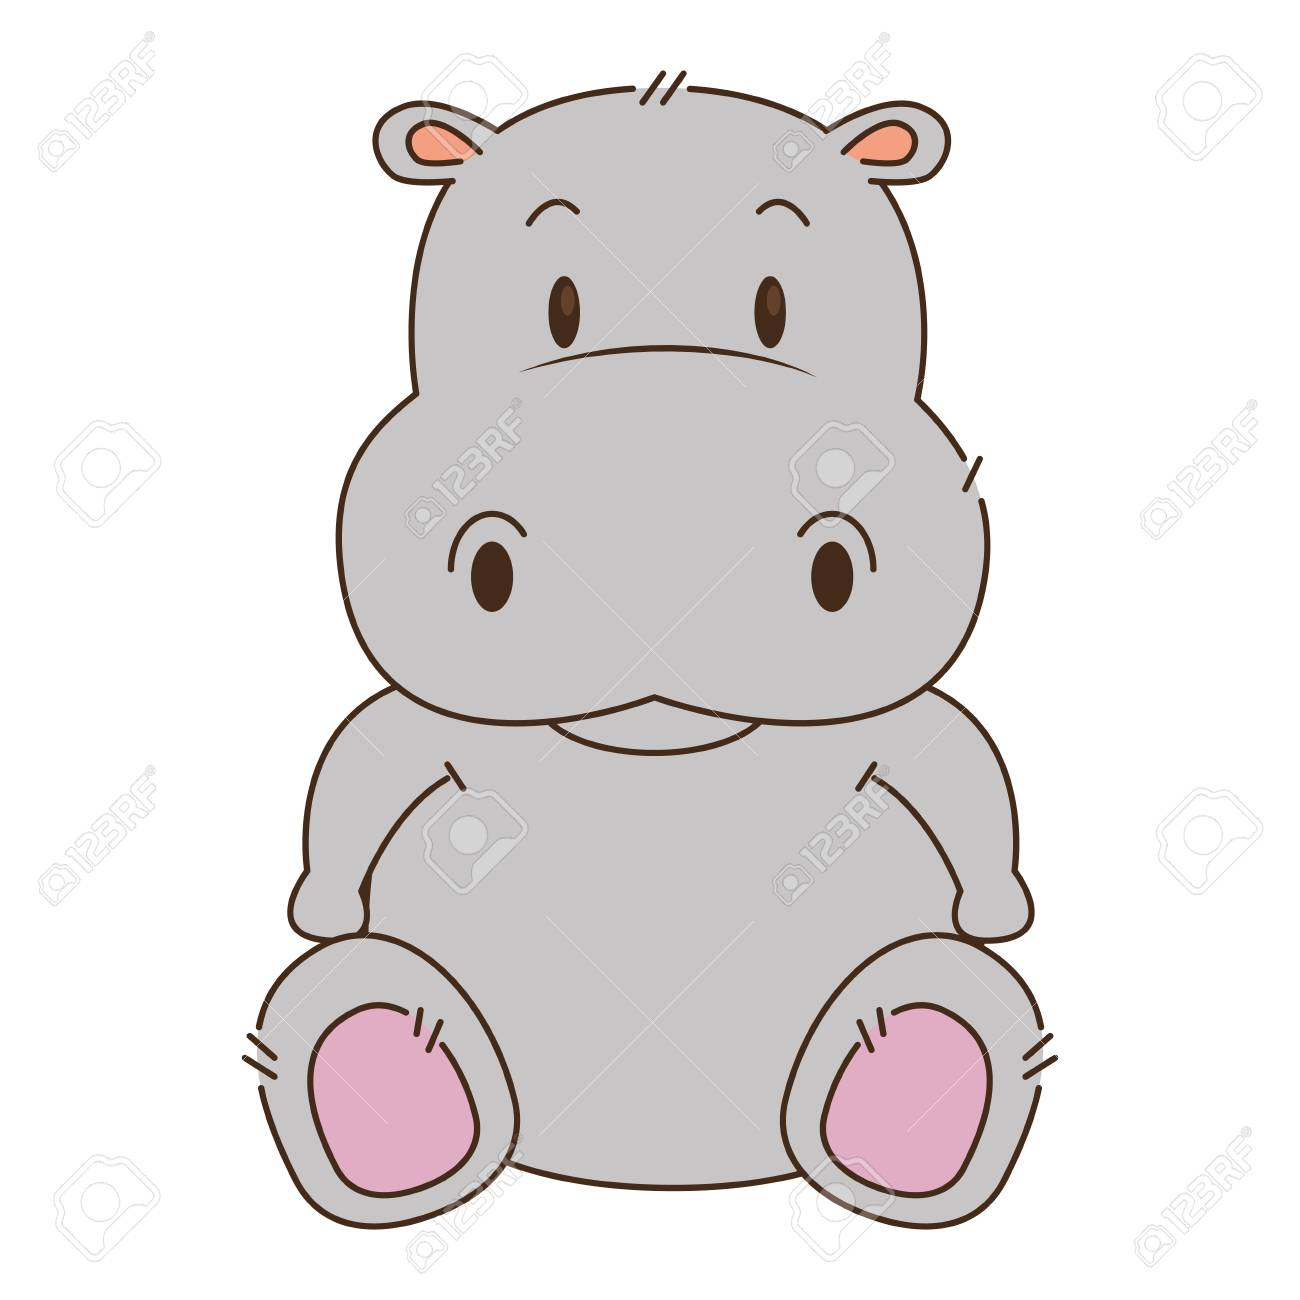 cute and adorable hippo character vector illustration design - 112326865